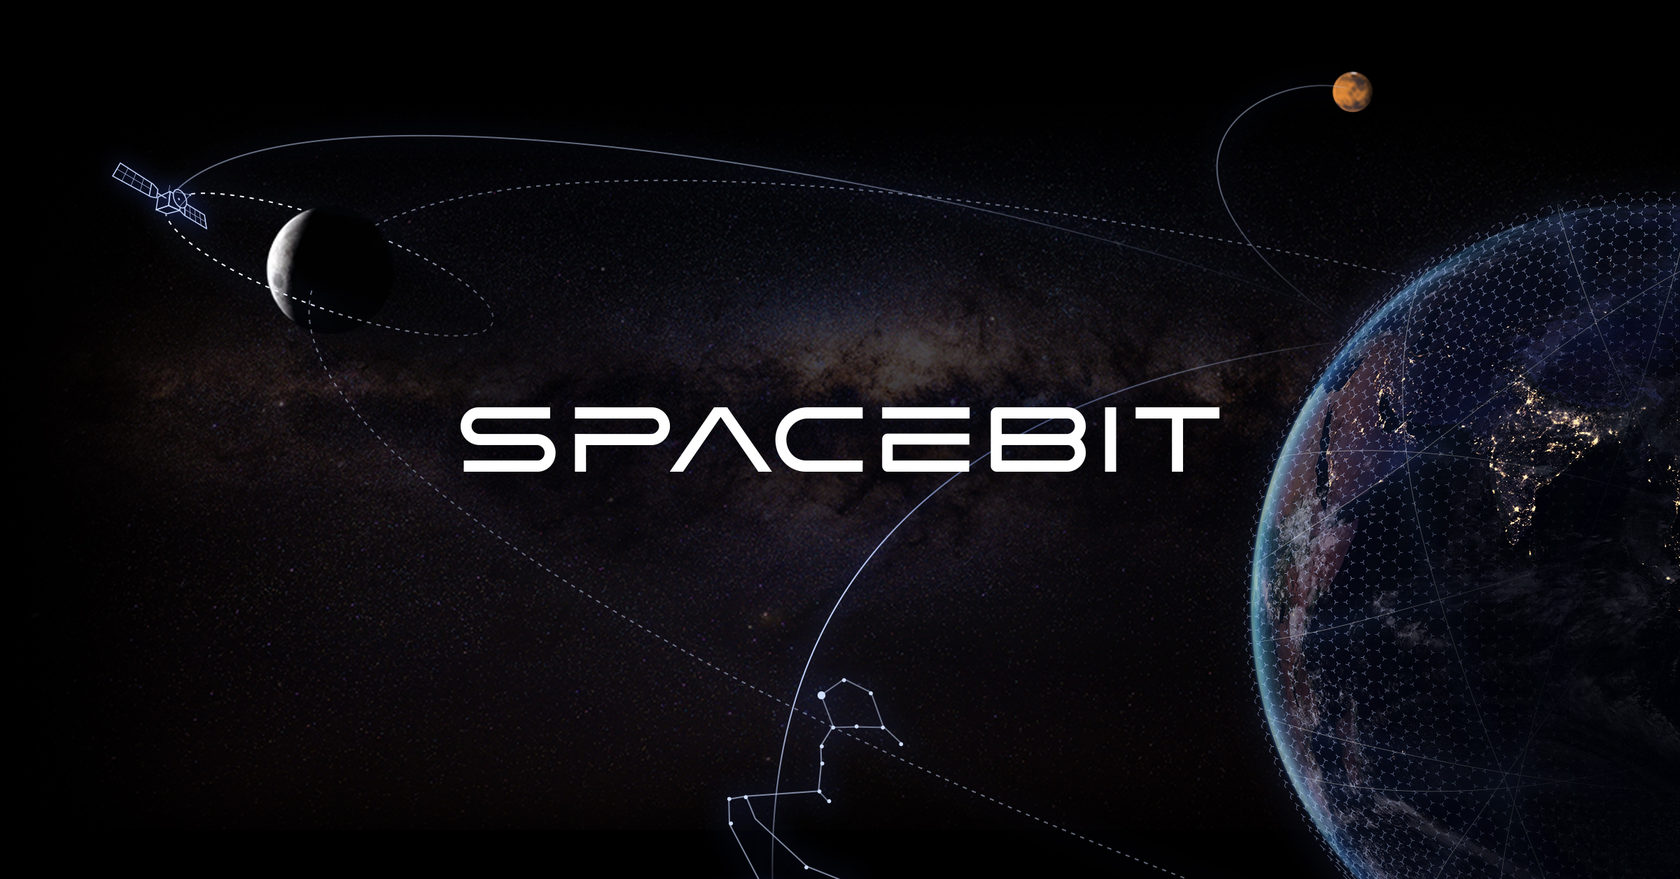 Spacebit brings EOS blockchain to the final frontier